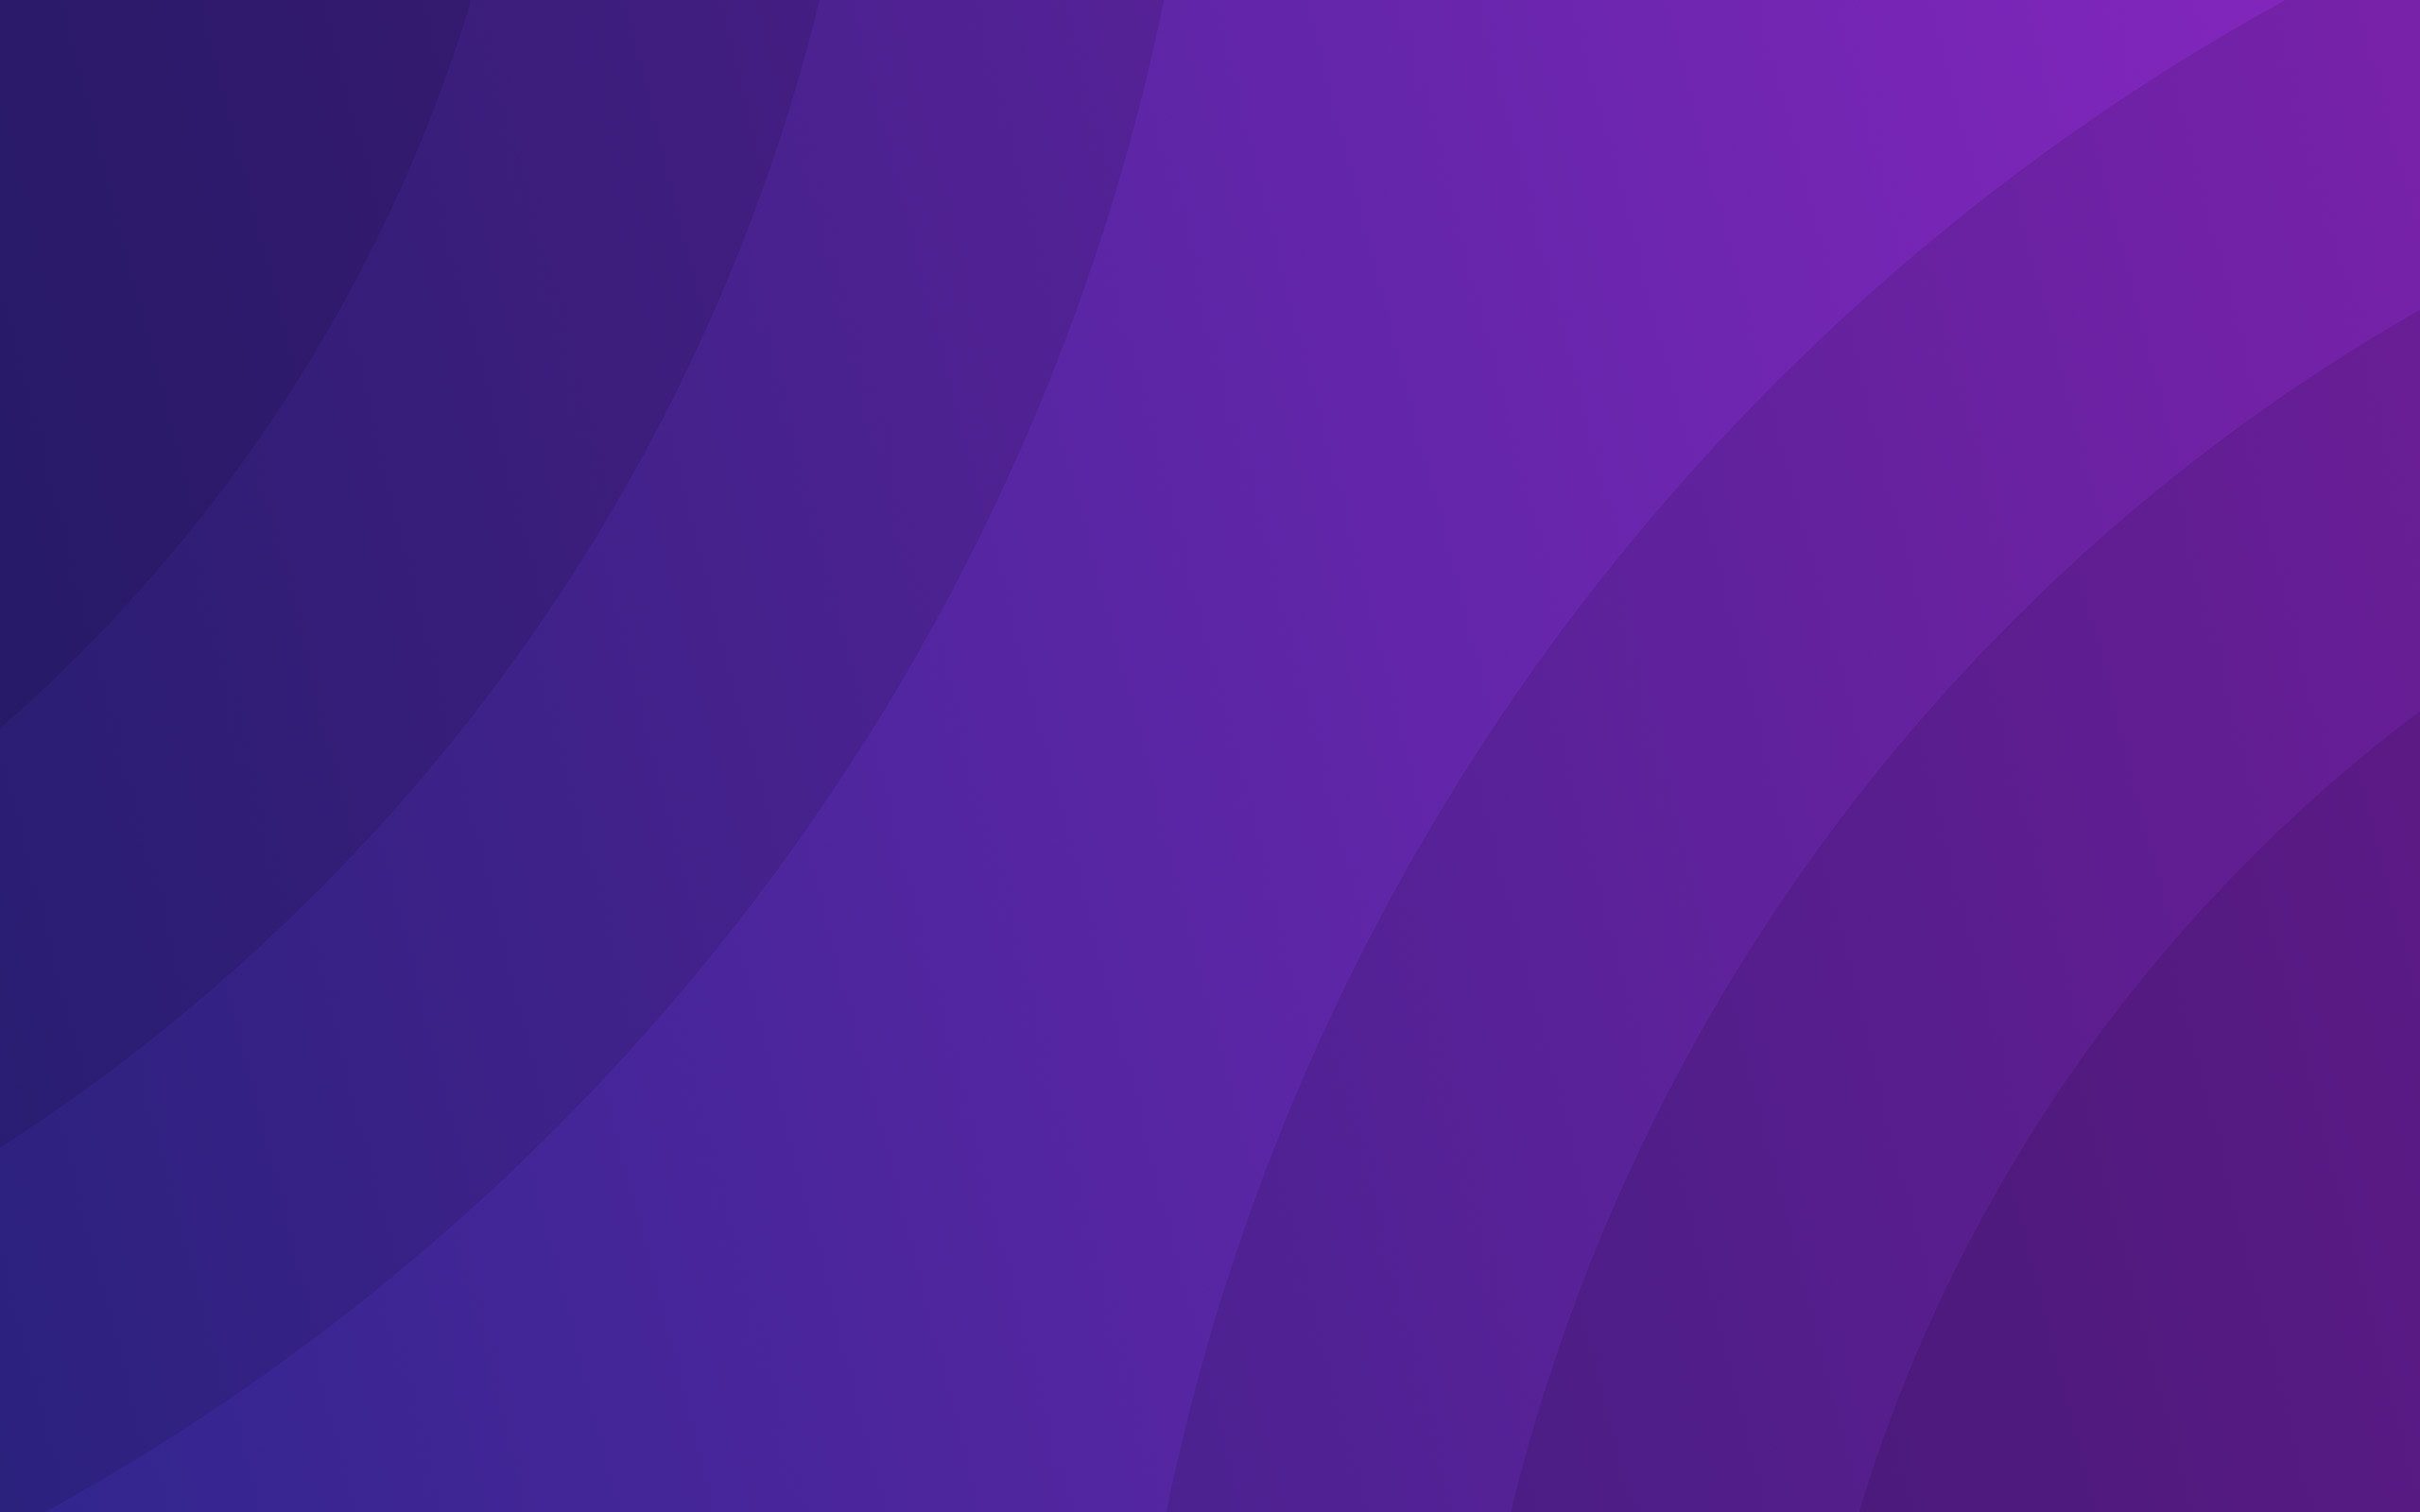 wallpaper for desktop, laptop | vy67-circle-blue-purple ...